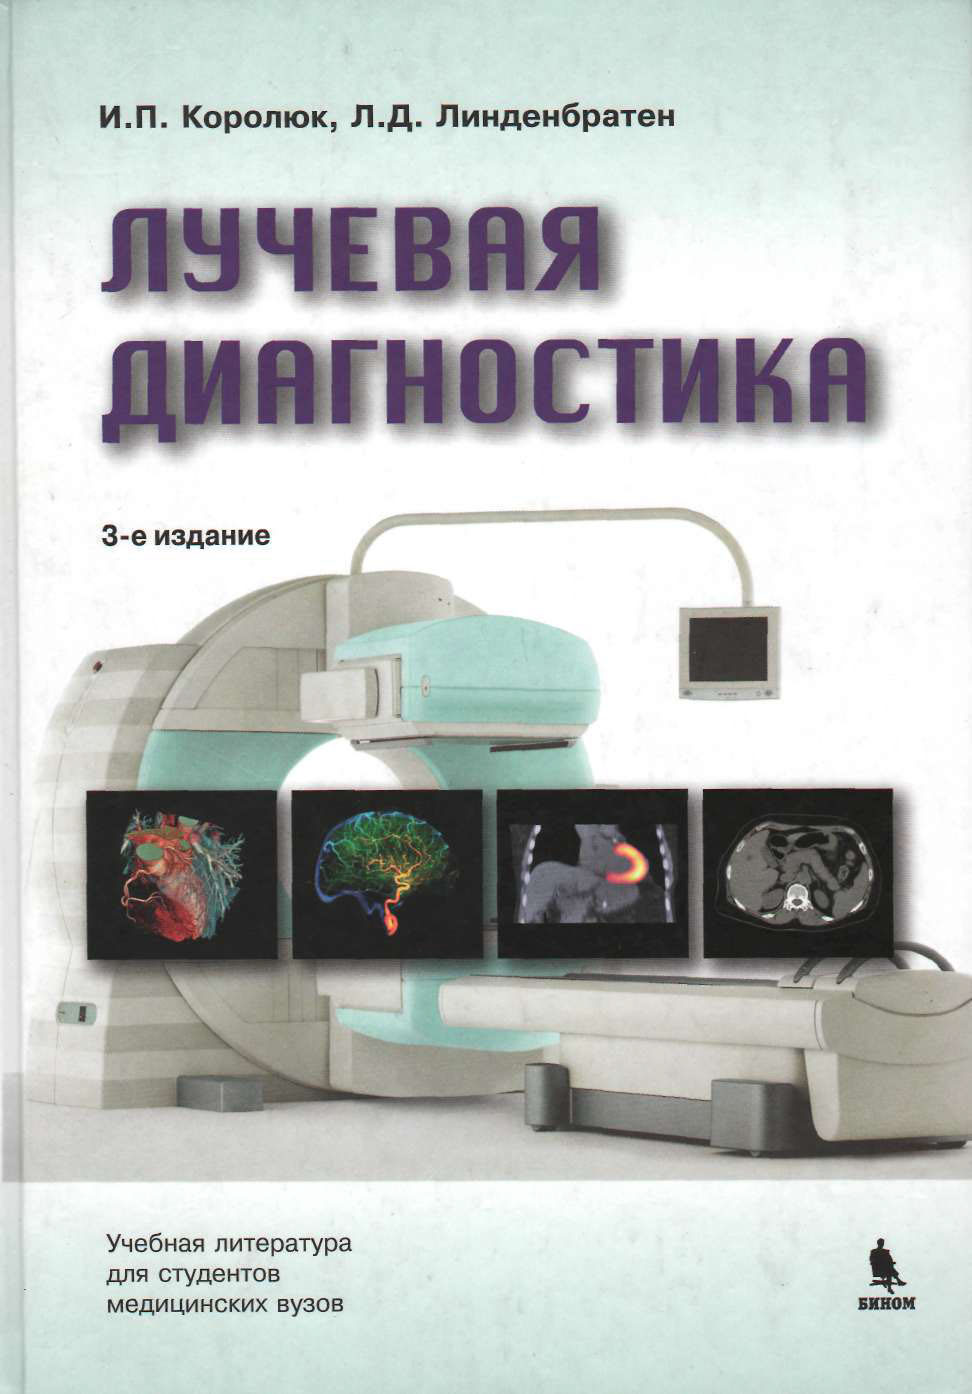 Luchevaya diagnostika